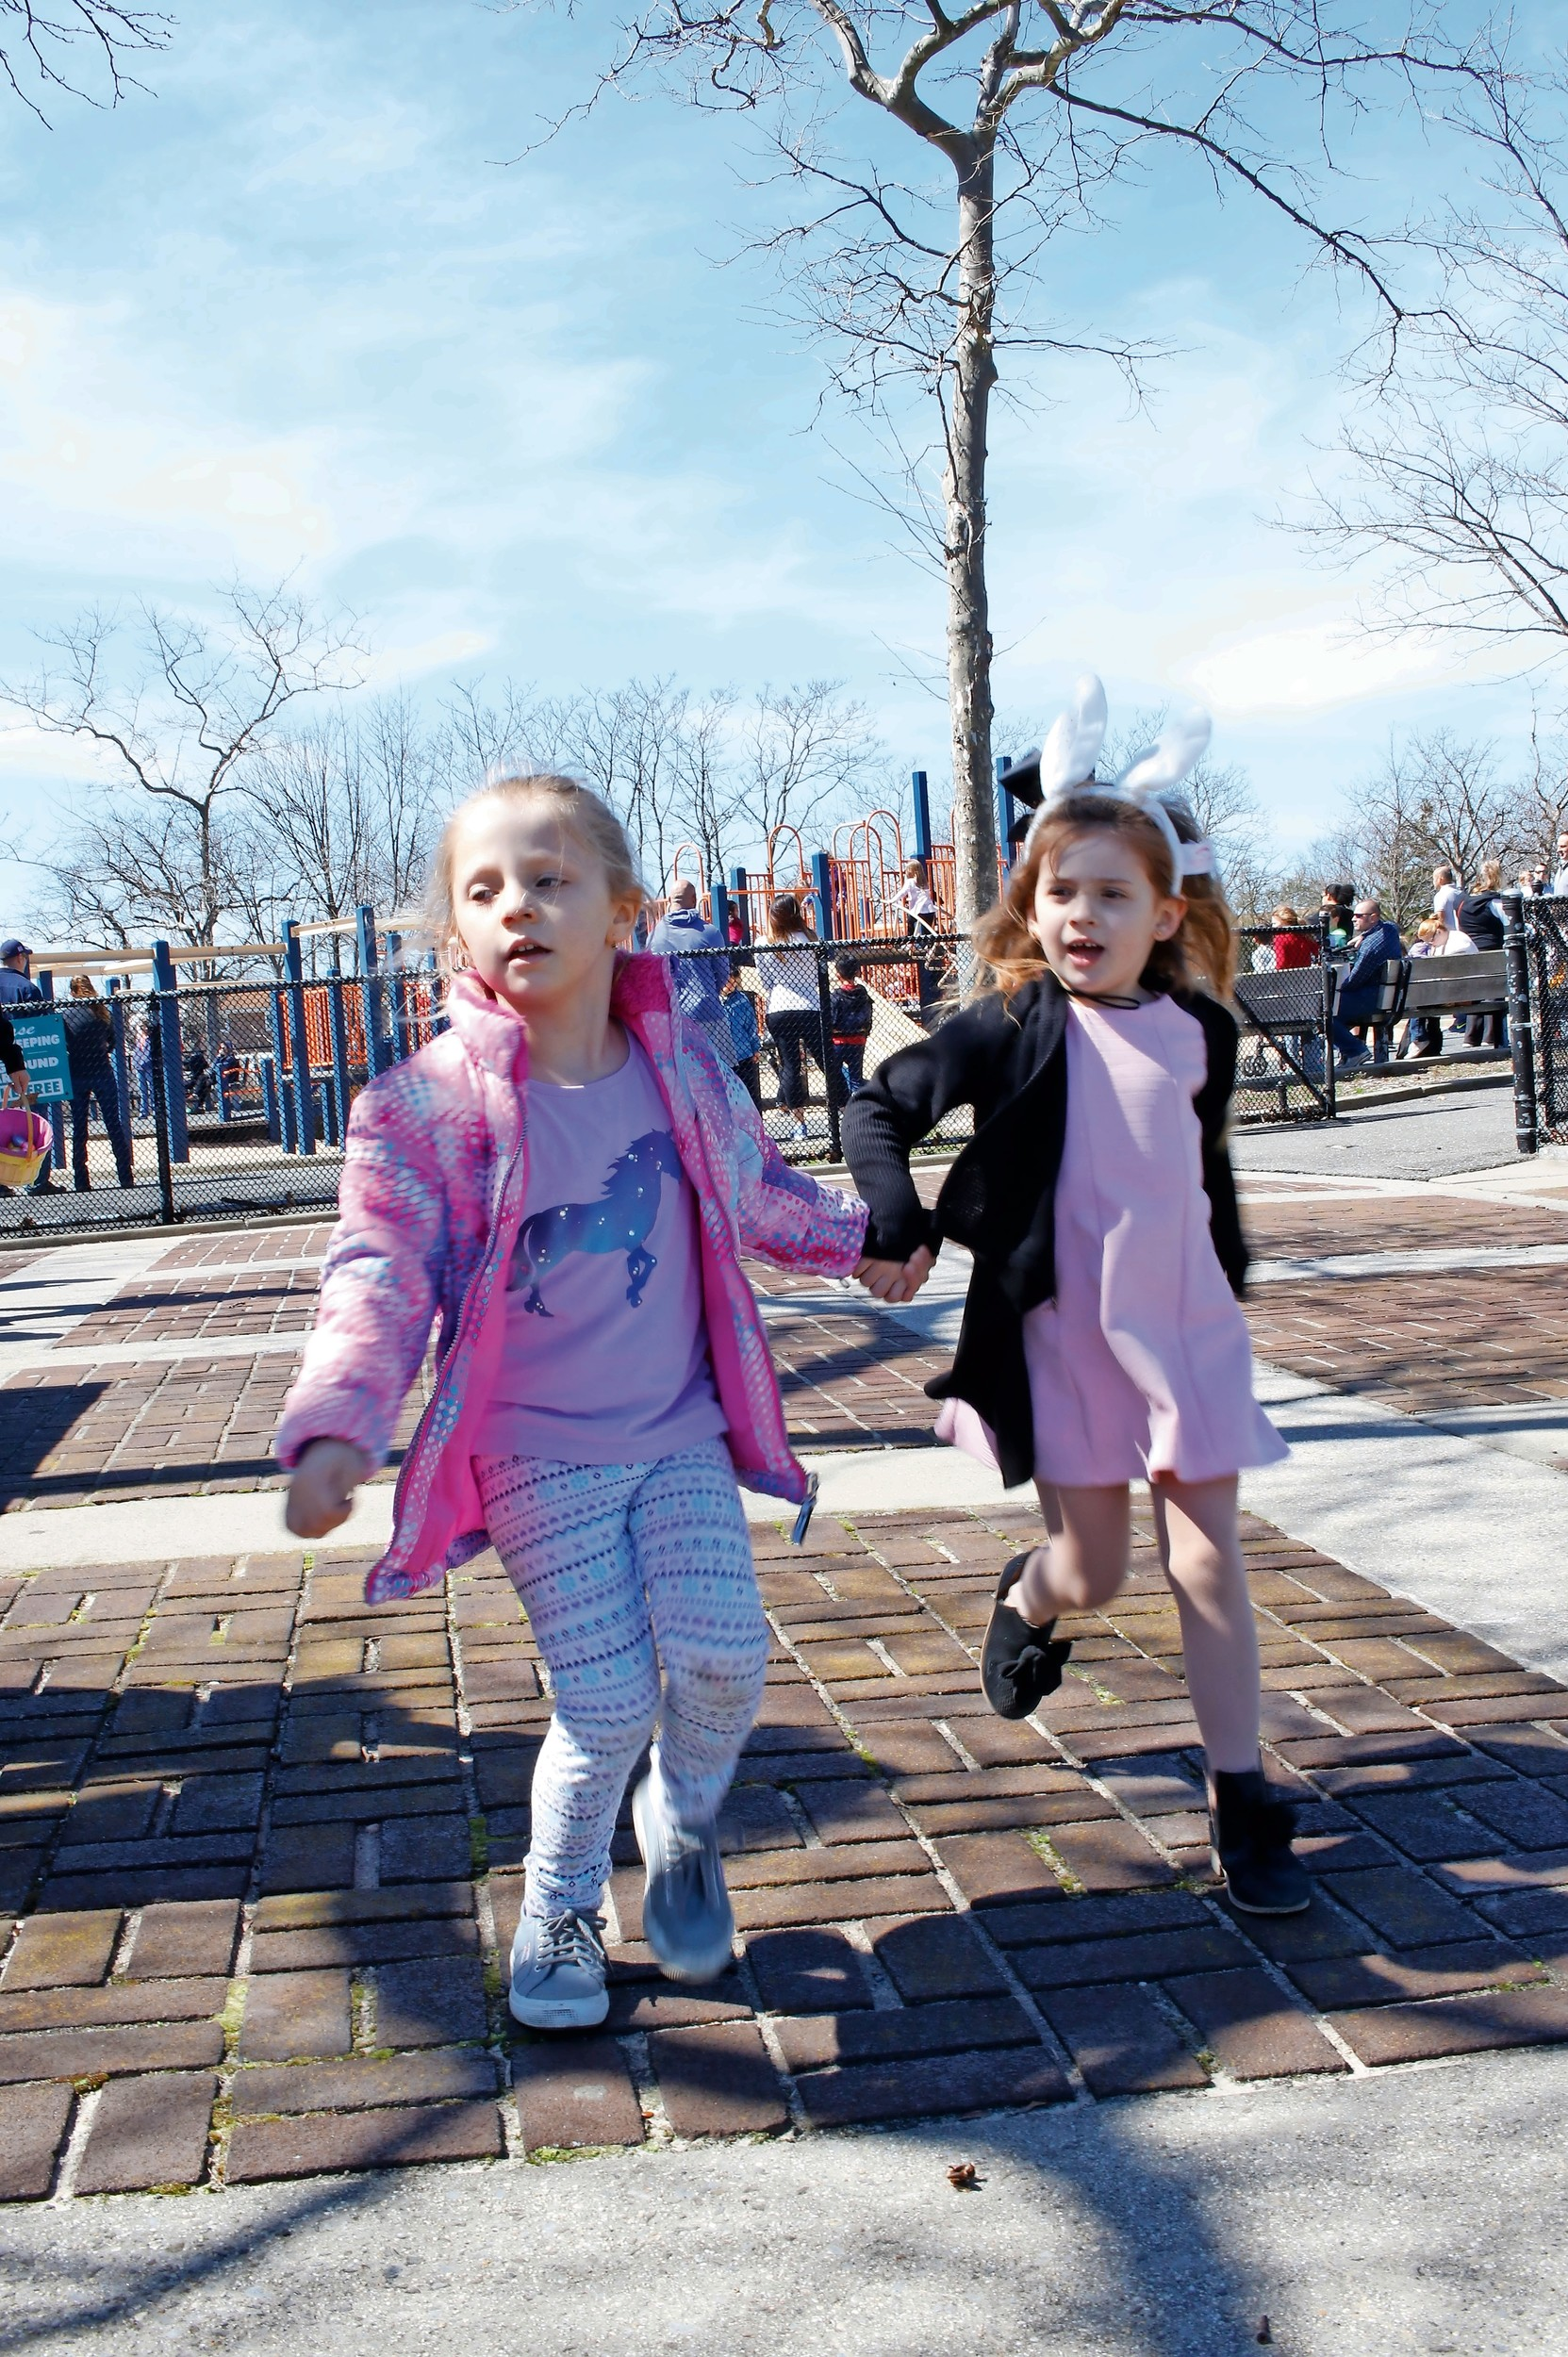 After the egg hunt, Grace Lopex, 5, left, and best friend Olivia Miller, 4, ran towards the refreshment table for some treats.